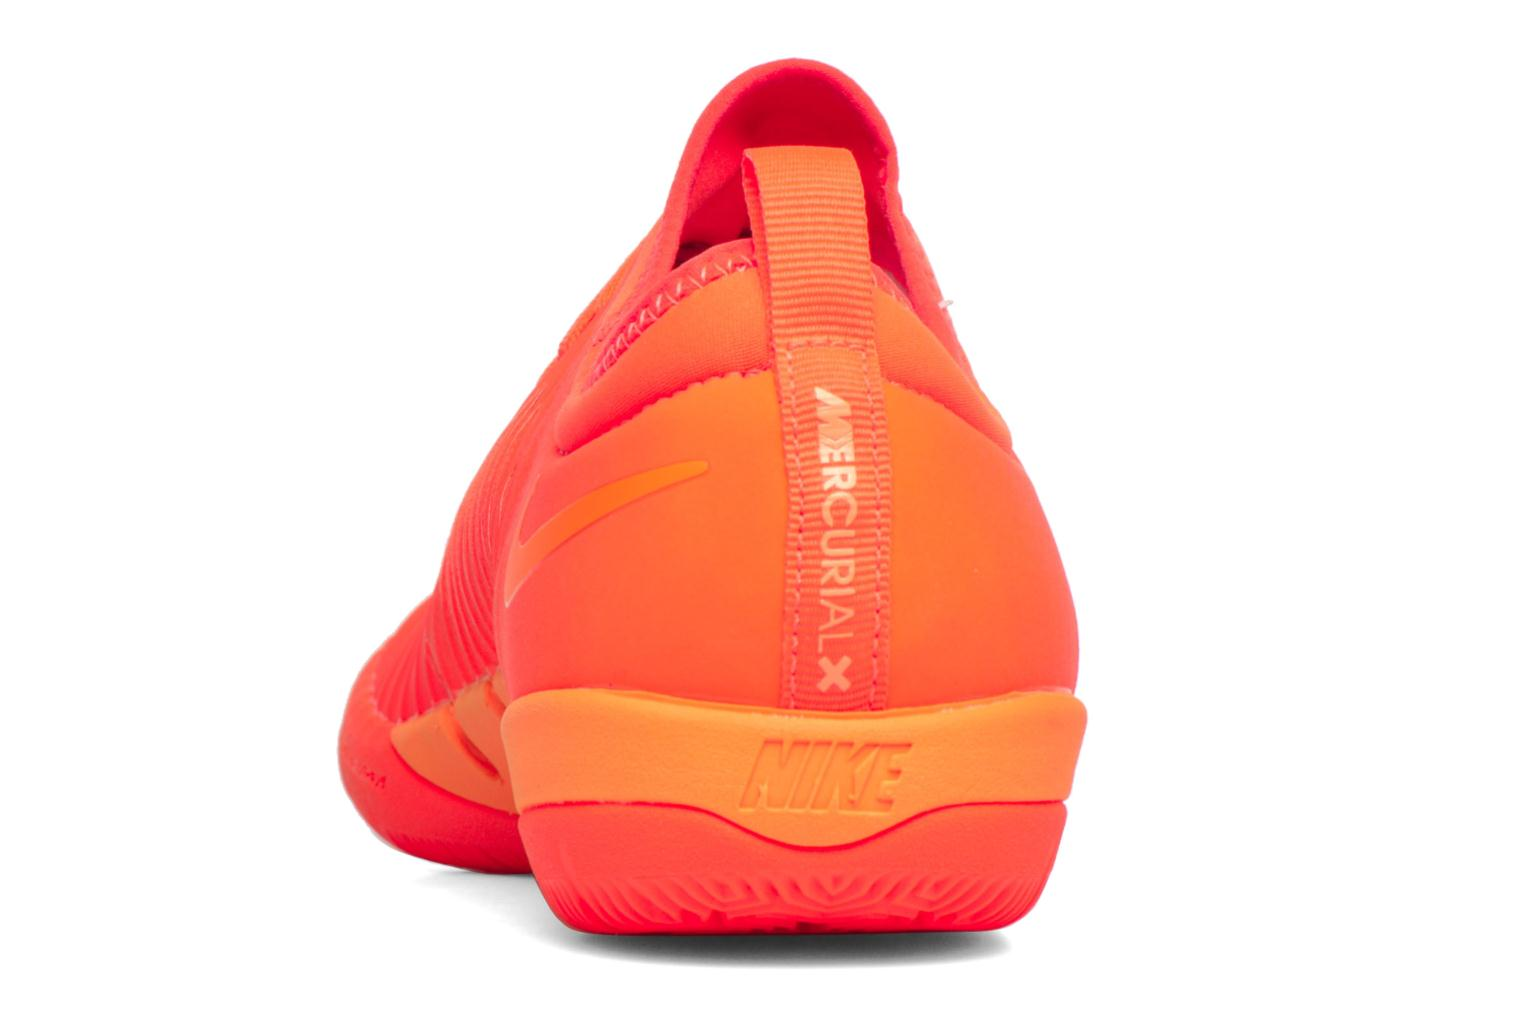 Mercurialx Finale Ii Ic Total Orange/Bright Citrus-Hyper Crimson